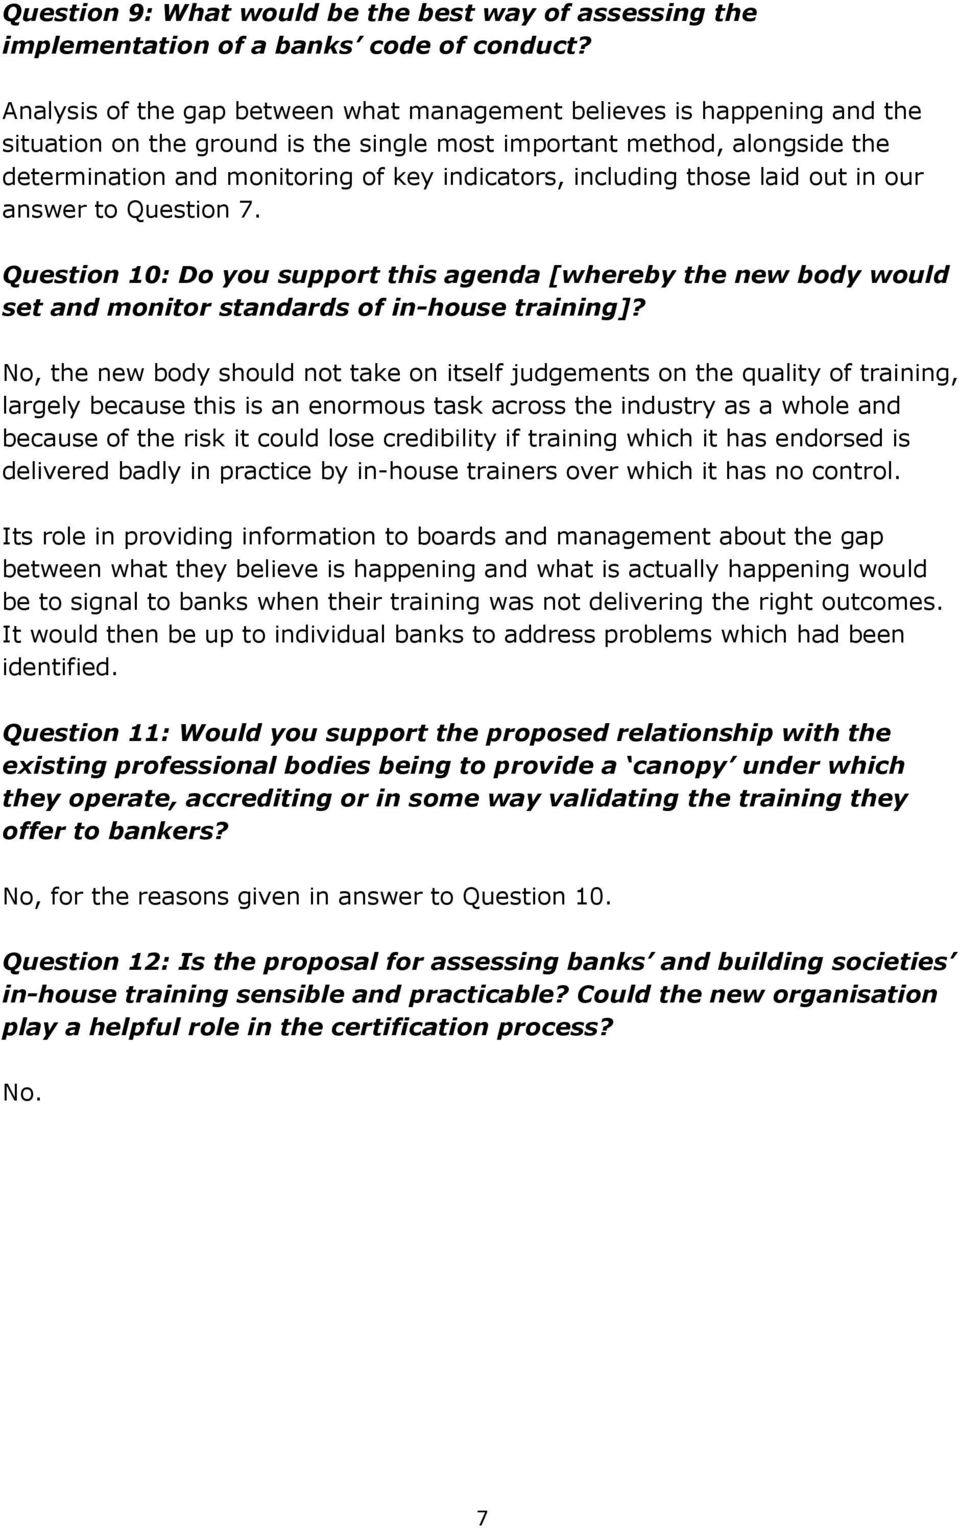 including those laid out in our answer to Question 7. Question 10: Do you support this agenda [whereby the new body would set and monitor standards of in-house training]?